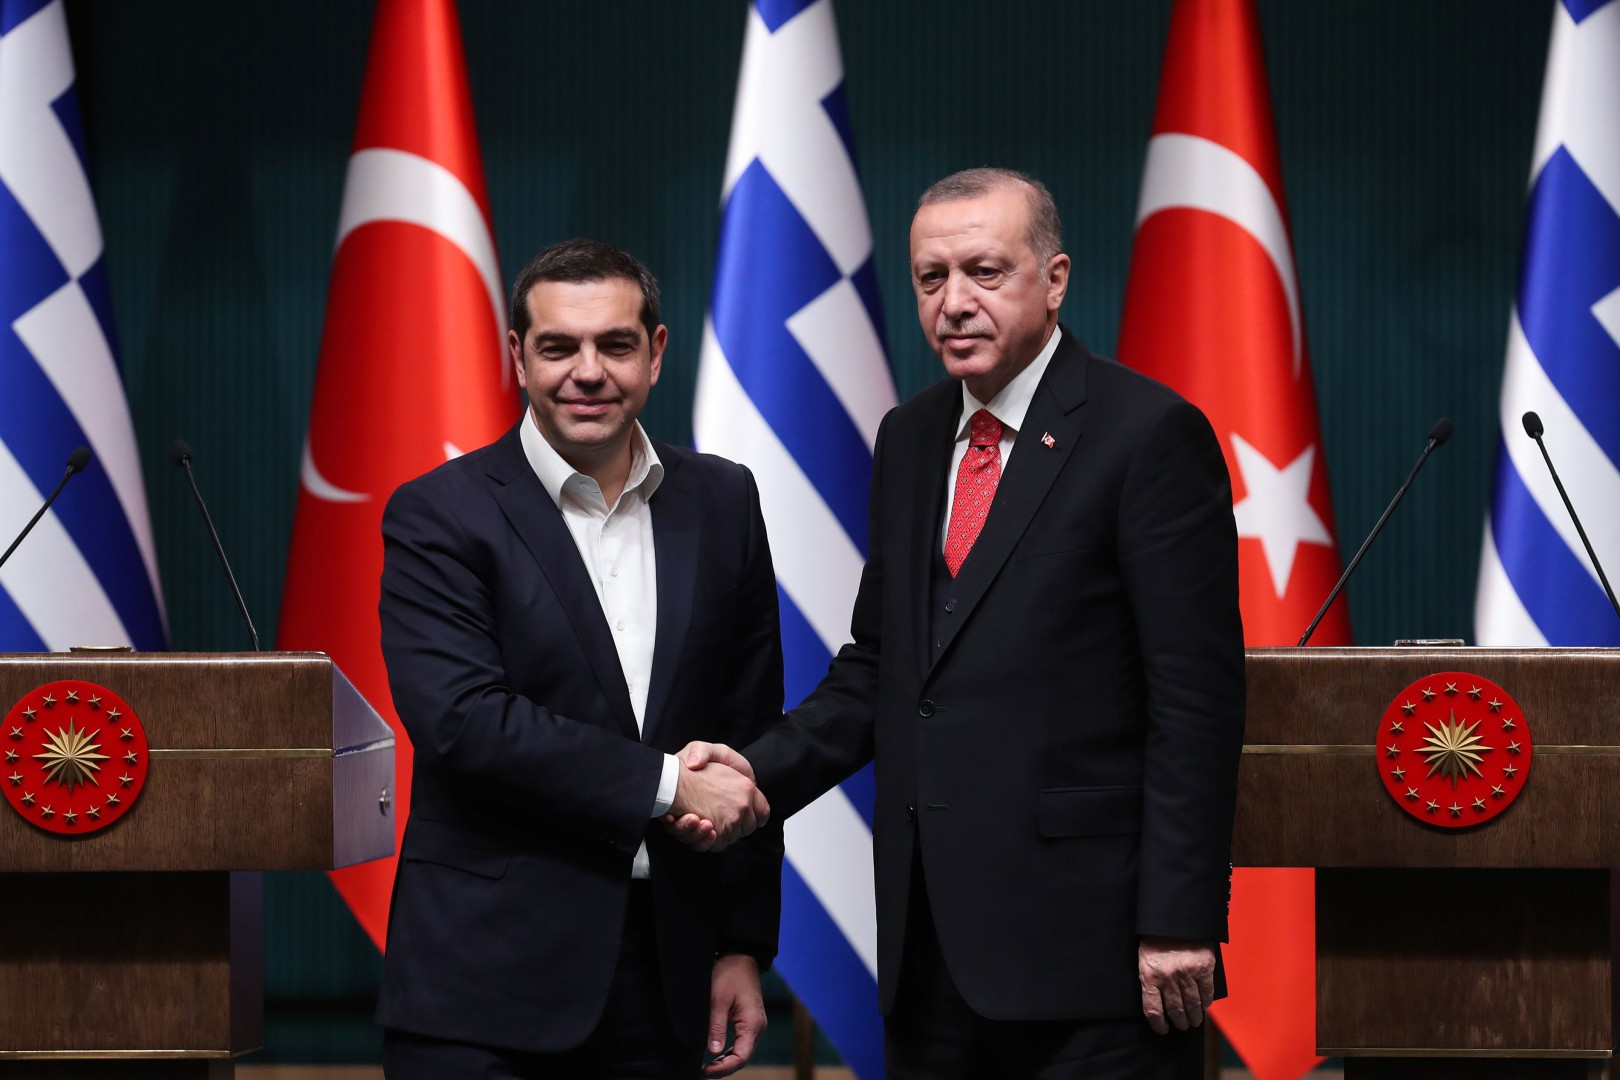 Turkish President Recep Tayyip Erdogan (R) and Greek Prime Minister Alexis Tsipras (L) shake hands at the end of a joint press conference following a meeting at the Presidential Complex in Ankara, on February 5, 2019. (Photo by Adem ALTAN / AFP)